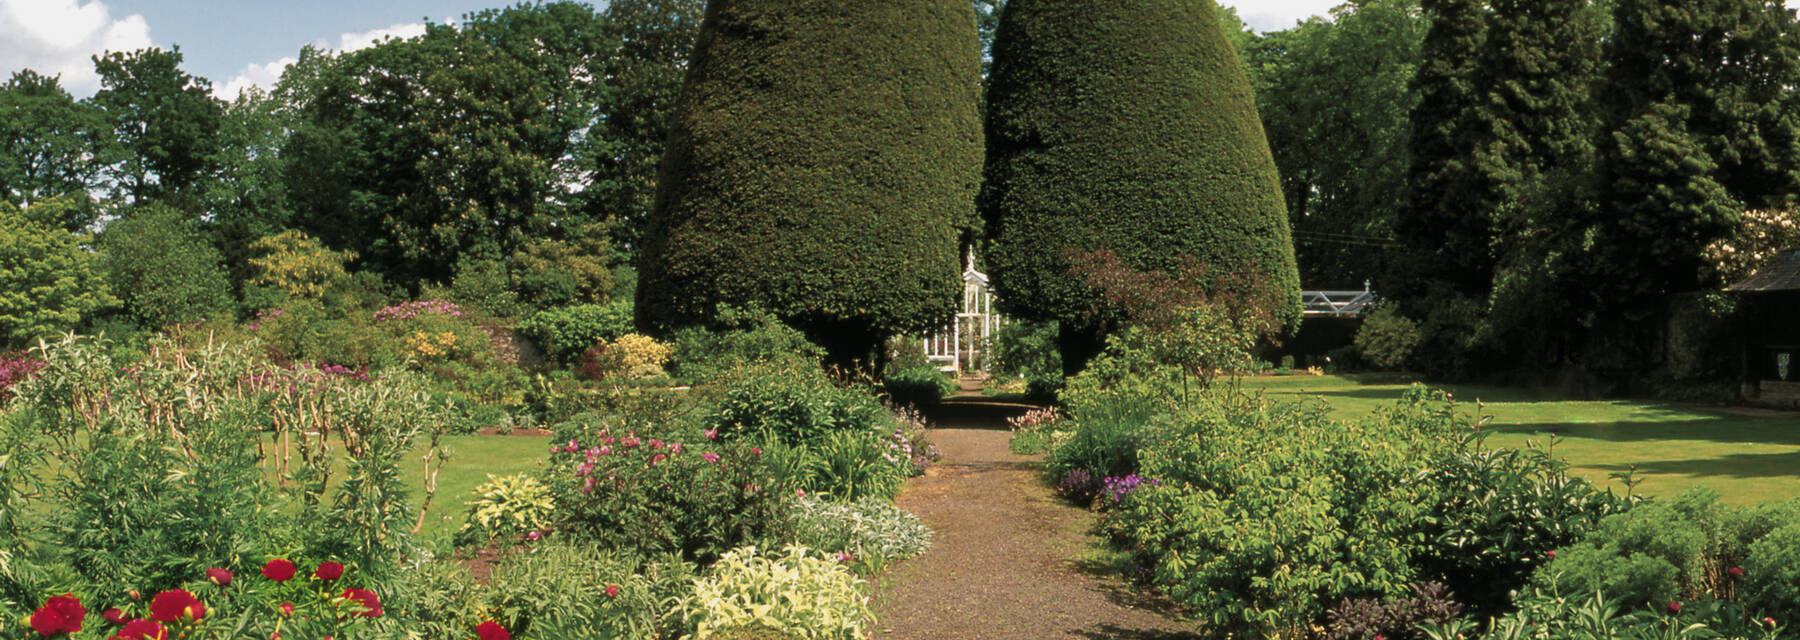 A gravel path runs through a garden, bordered by colourful flower beds either side. Large and very tall yew trees stand either side of the end of the path.